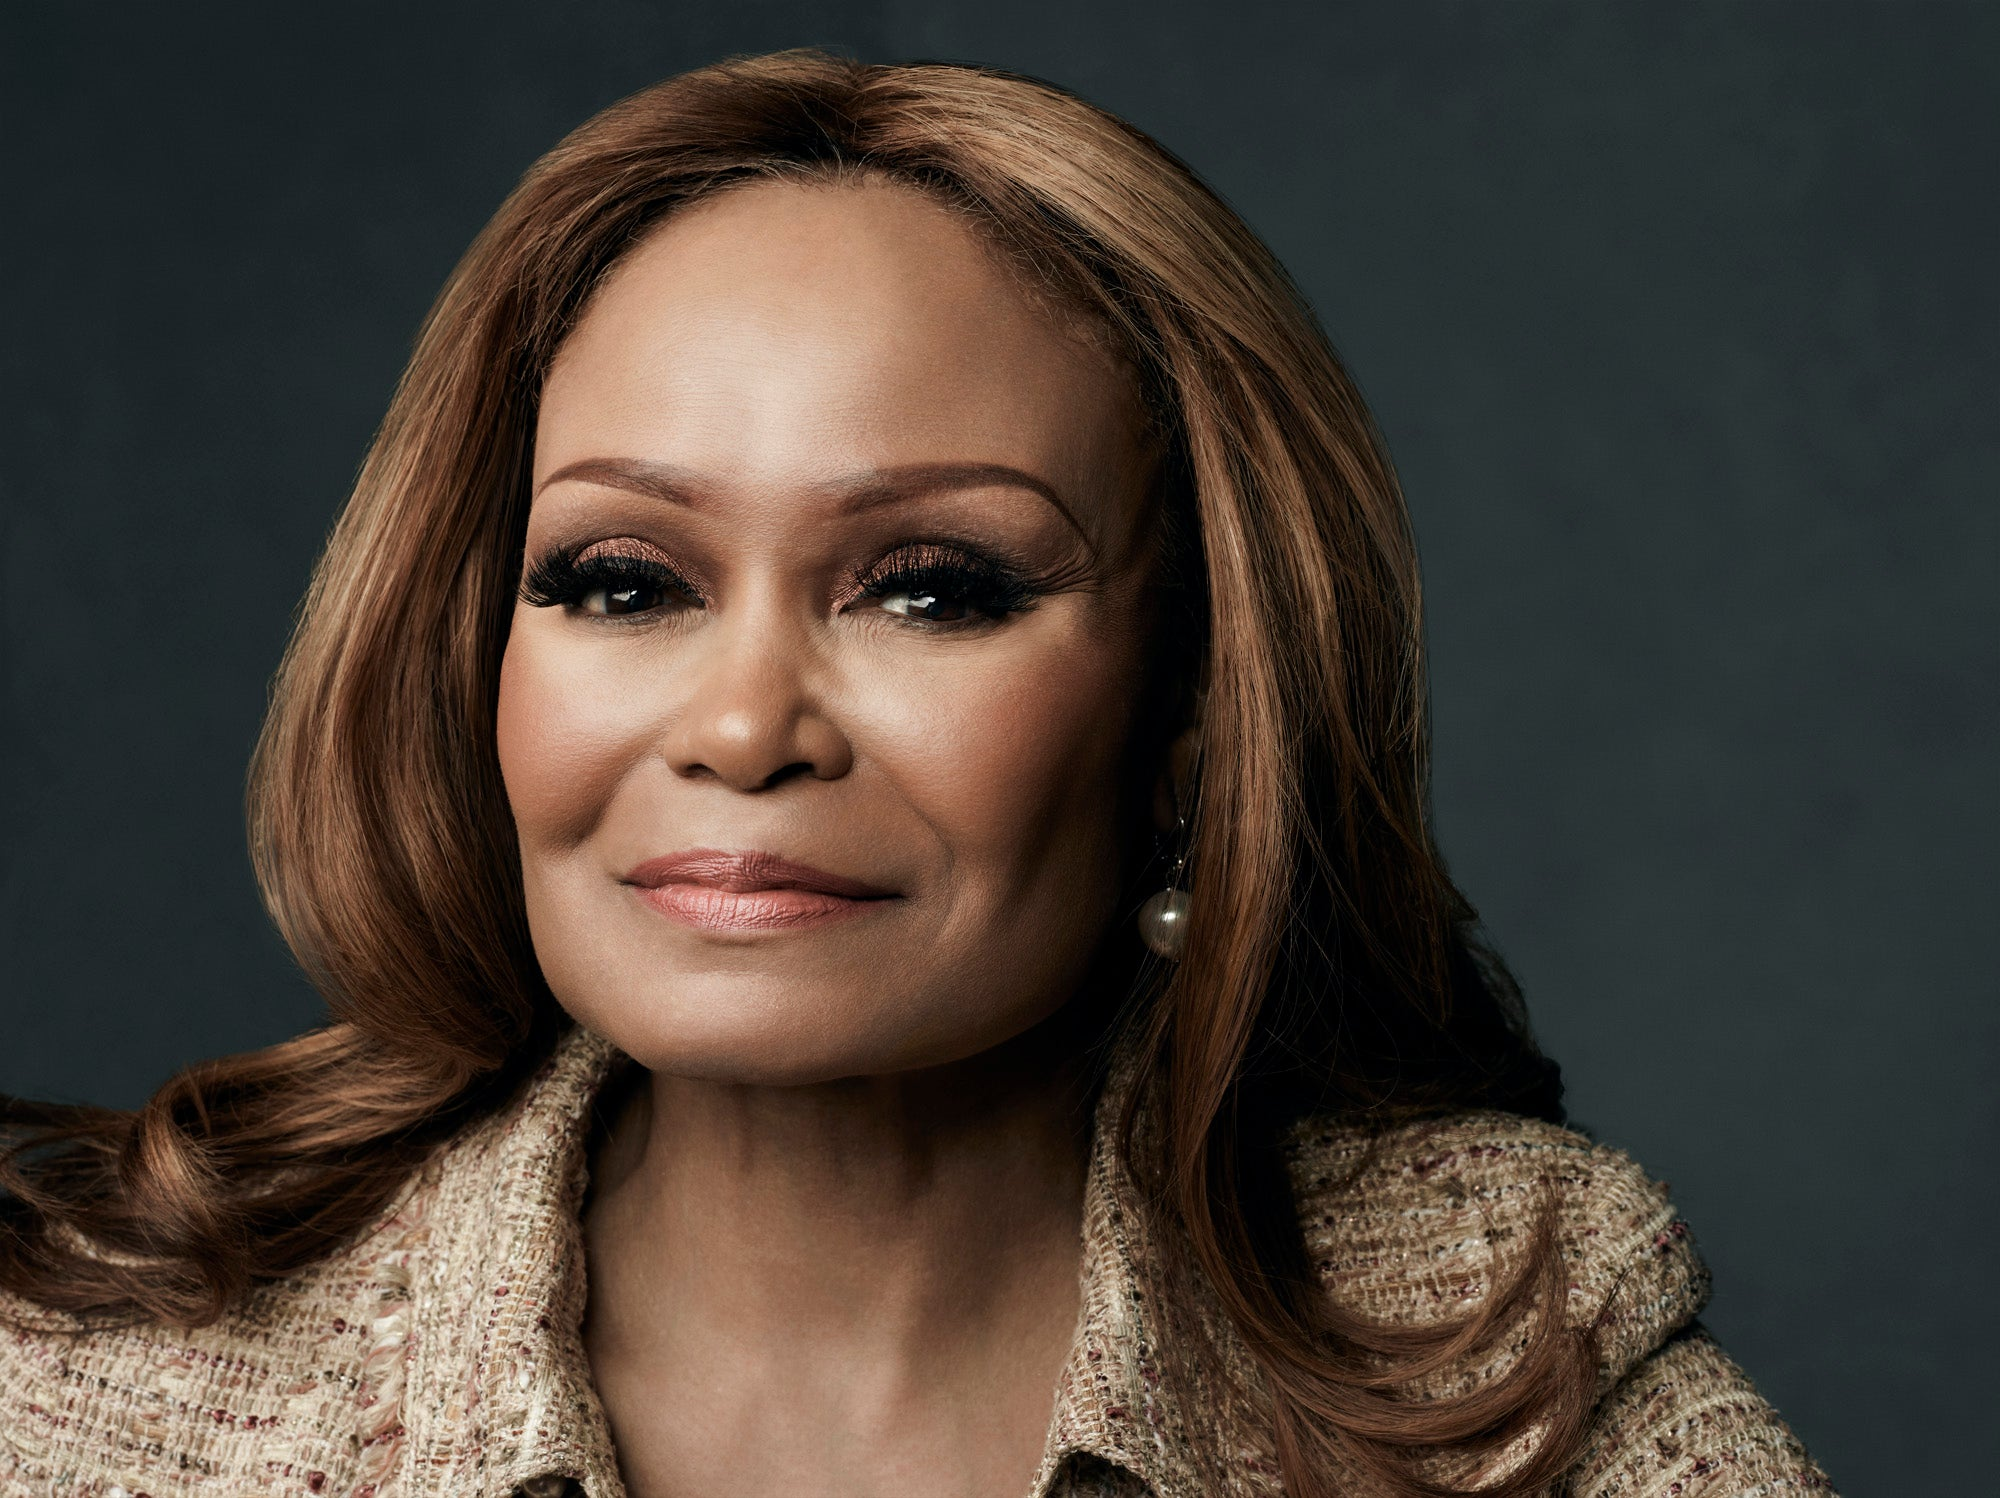 Meet the first black woman to own and operate a billion - dollar company in the US